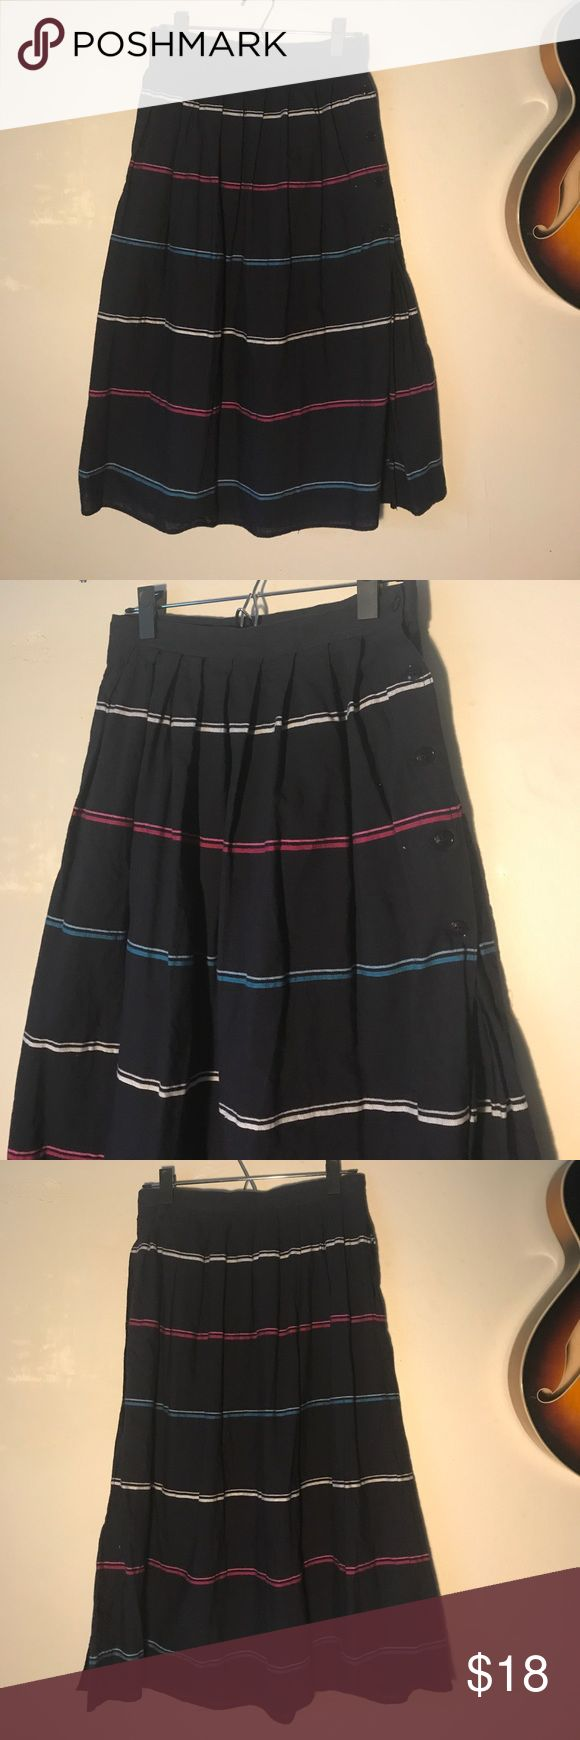 """Vintage Navy Striped Midi Skirt Vintage navy striped skirt with buttons down along side. 28"""" across waist and 29.5"""" in length Skirts Midi"""